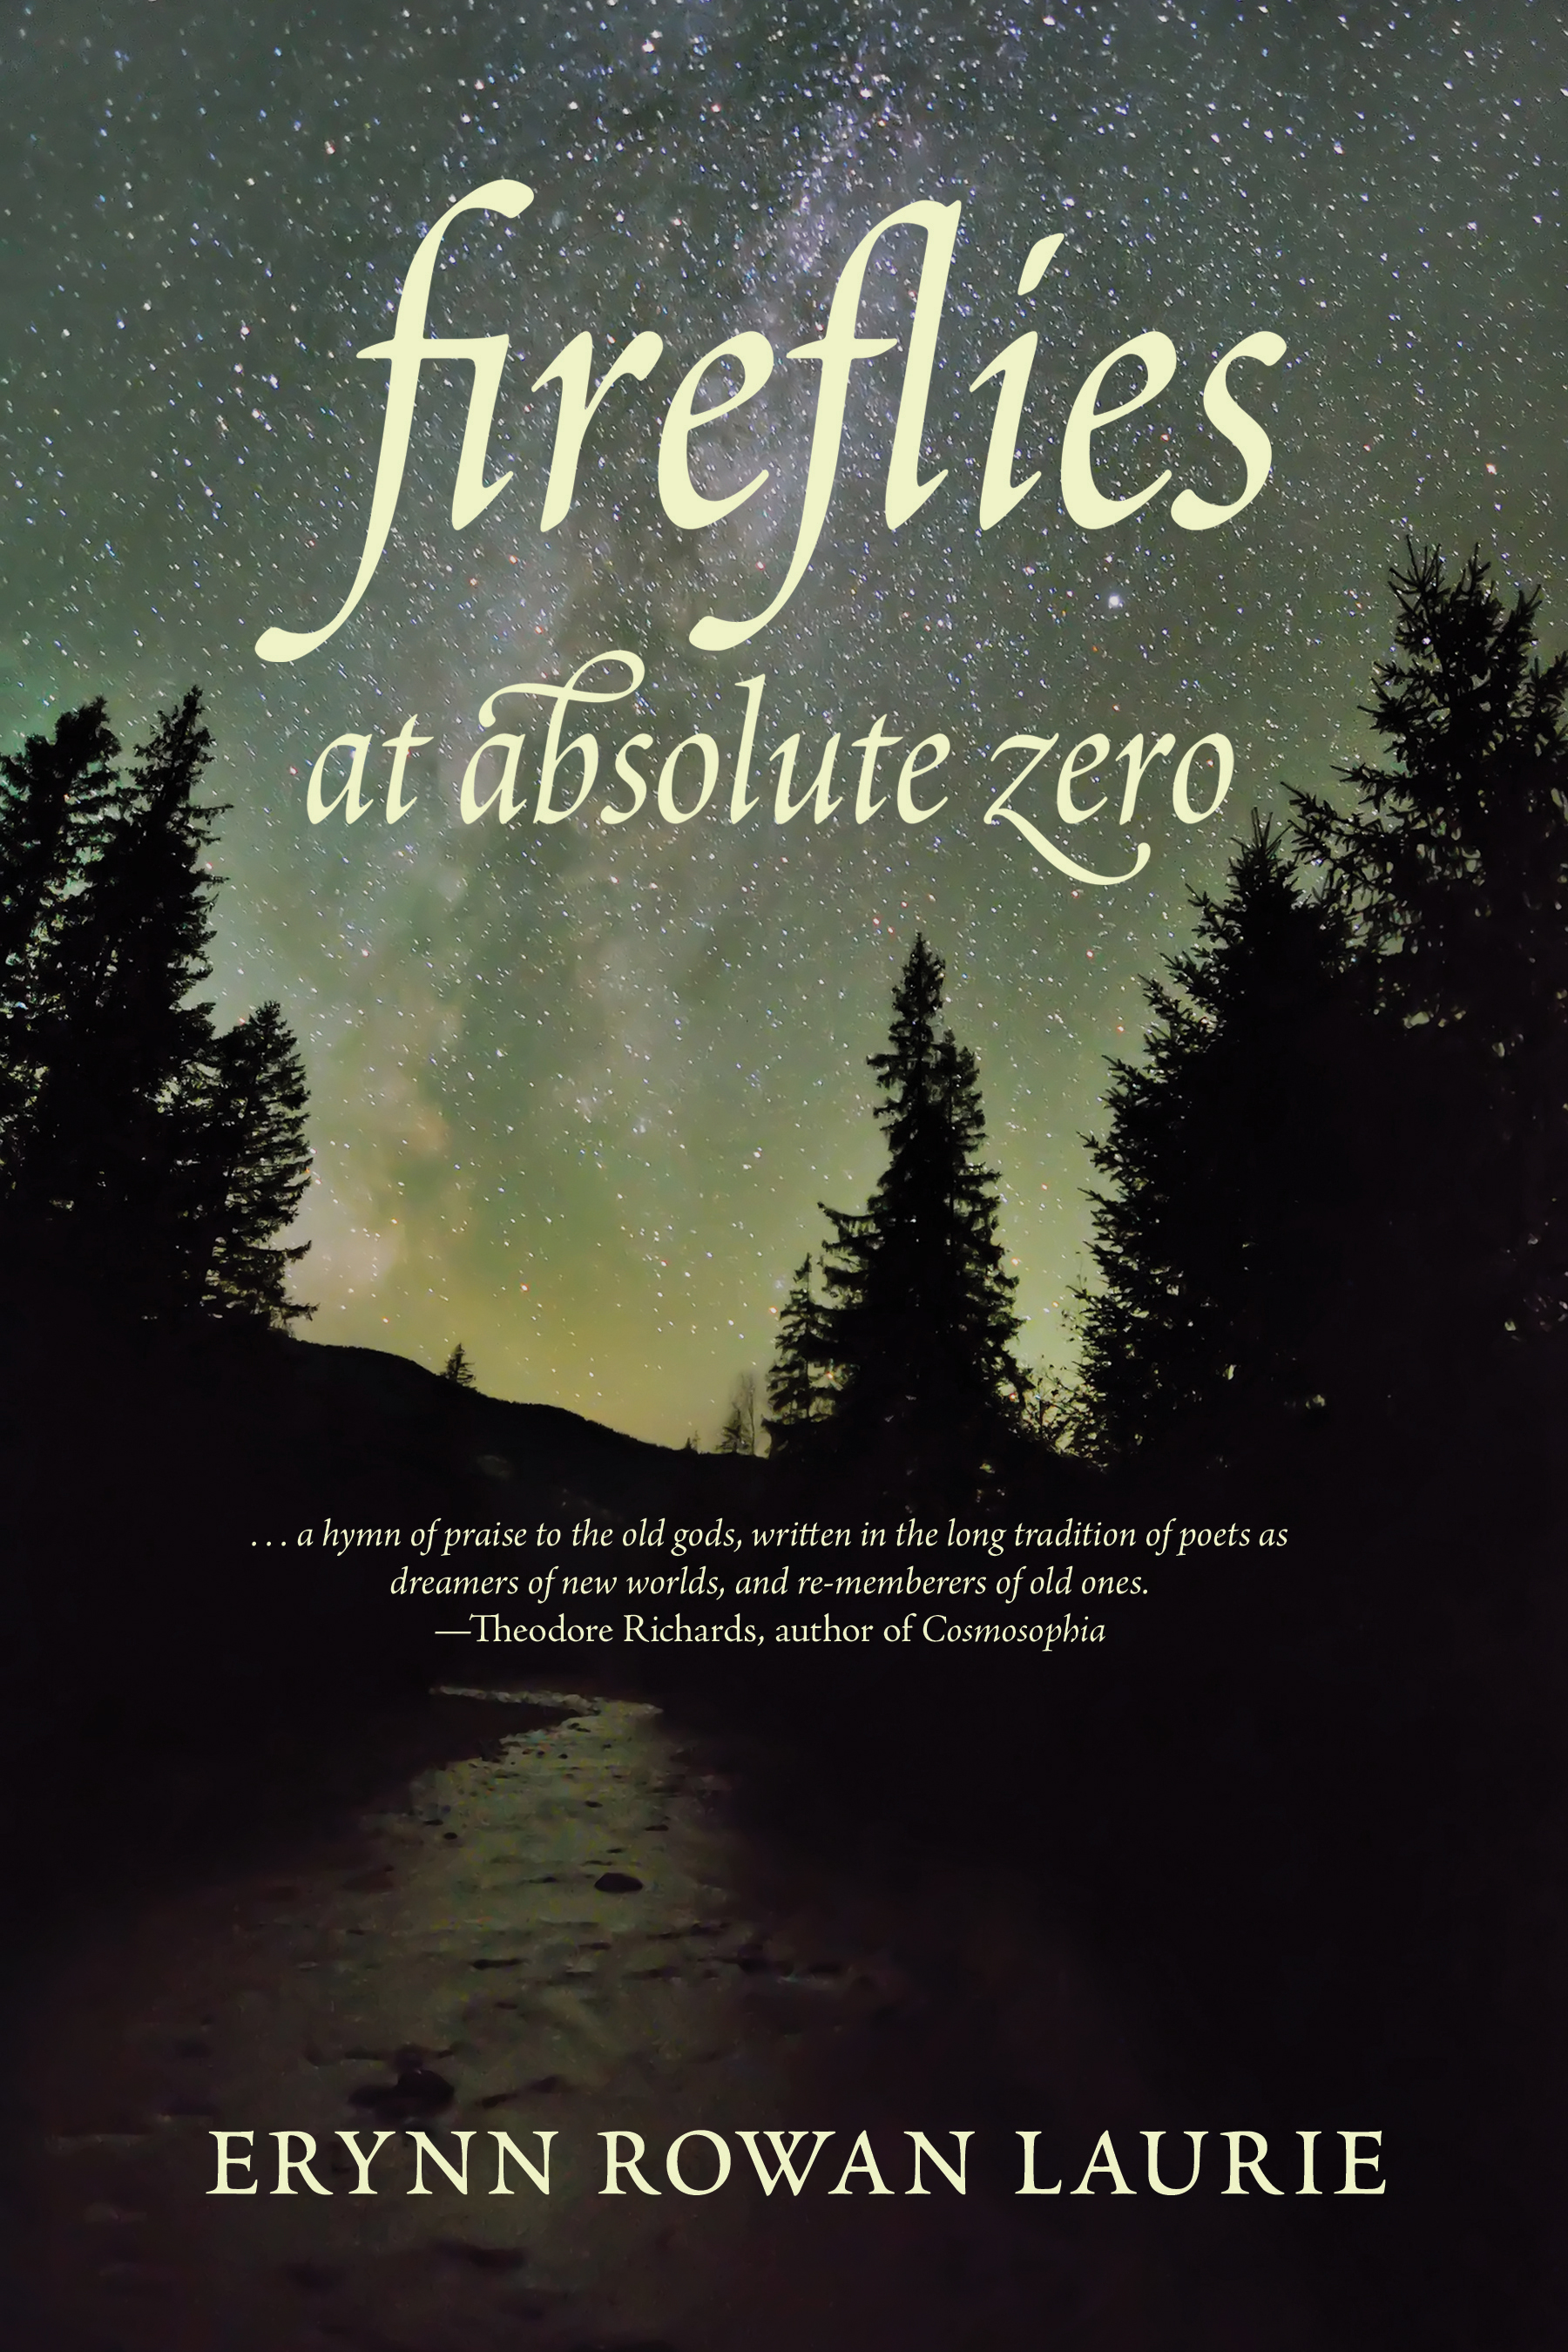 Fireflies at Absolute Zero